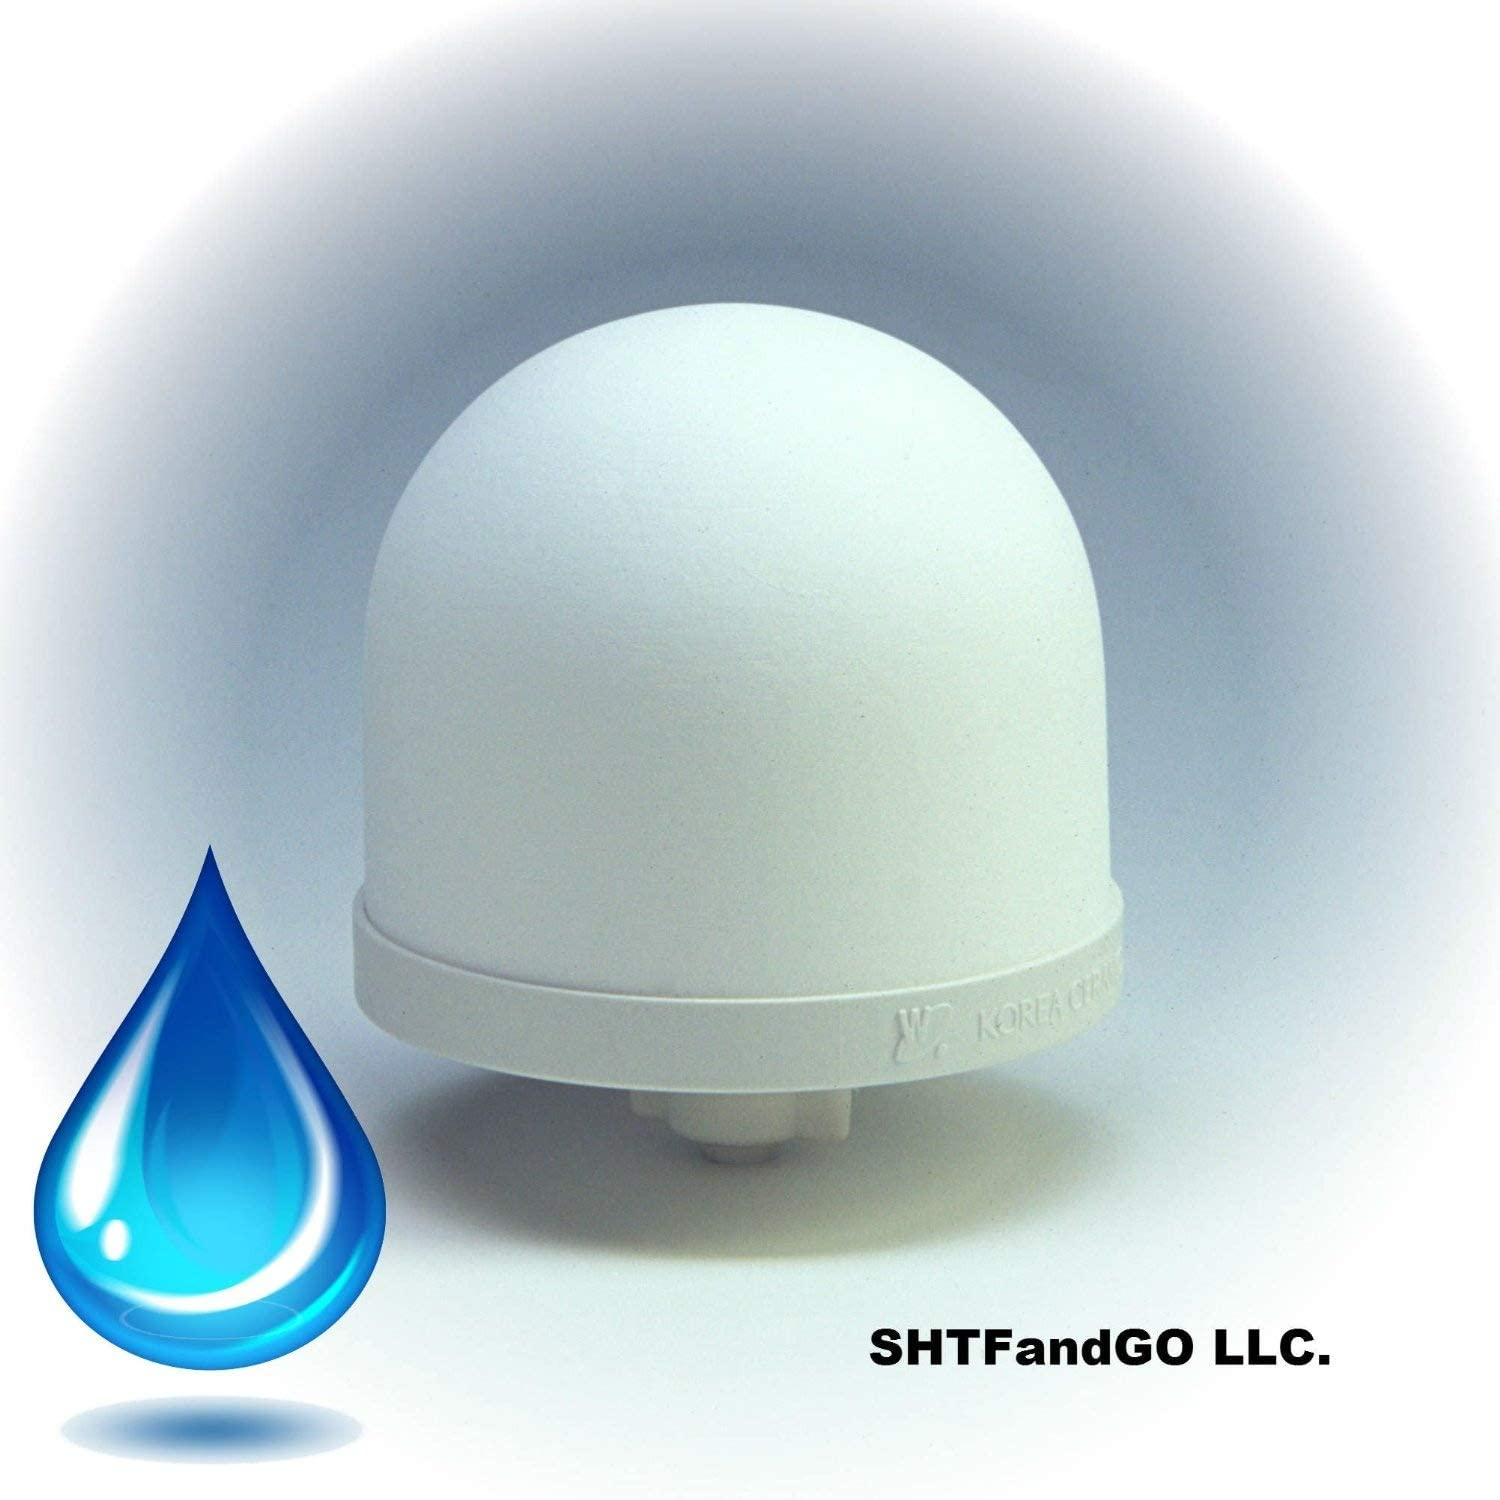 SHTFandGO Ceramic Dome Water Filter Element with Silver for Anti-Bacterial Purification (1)